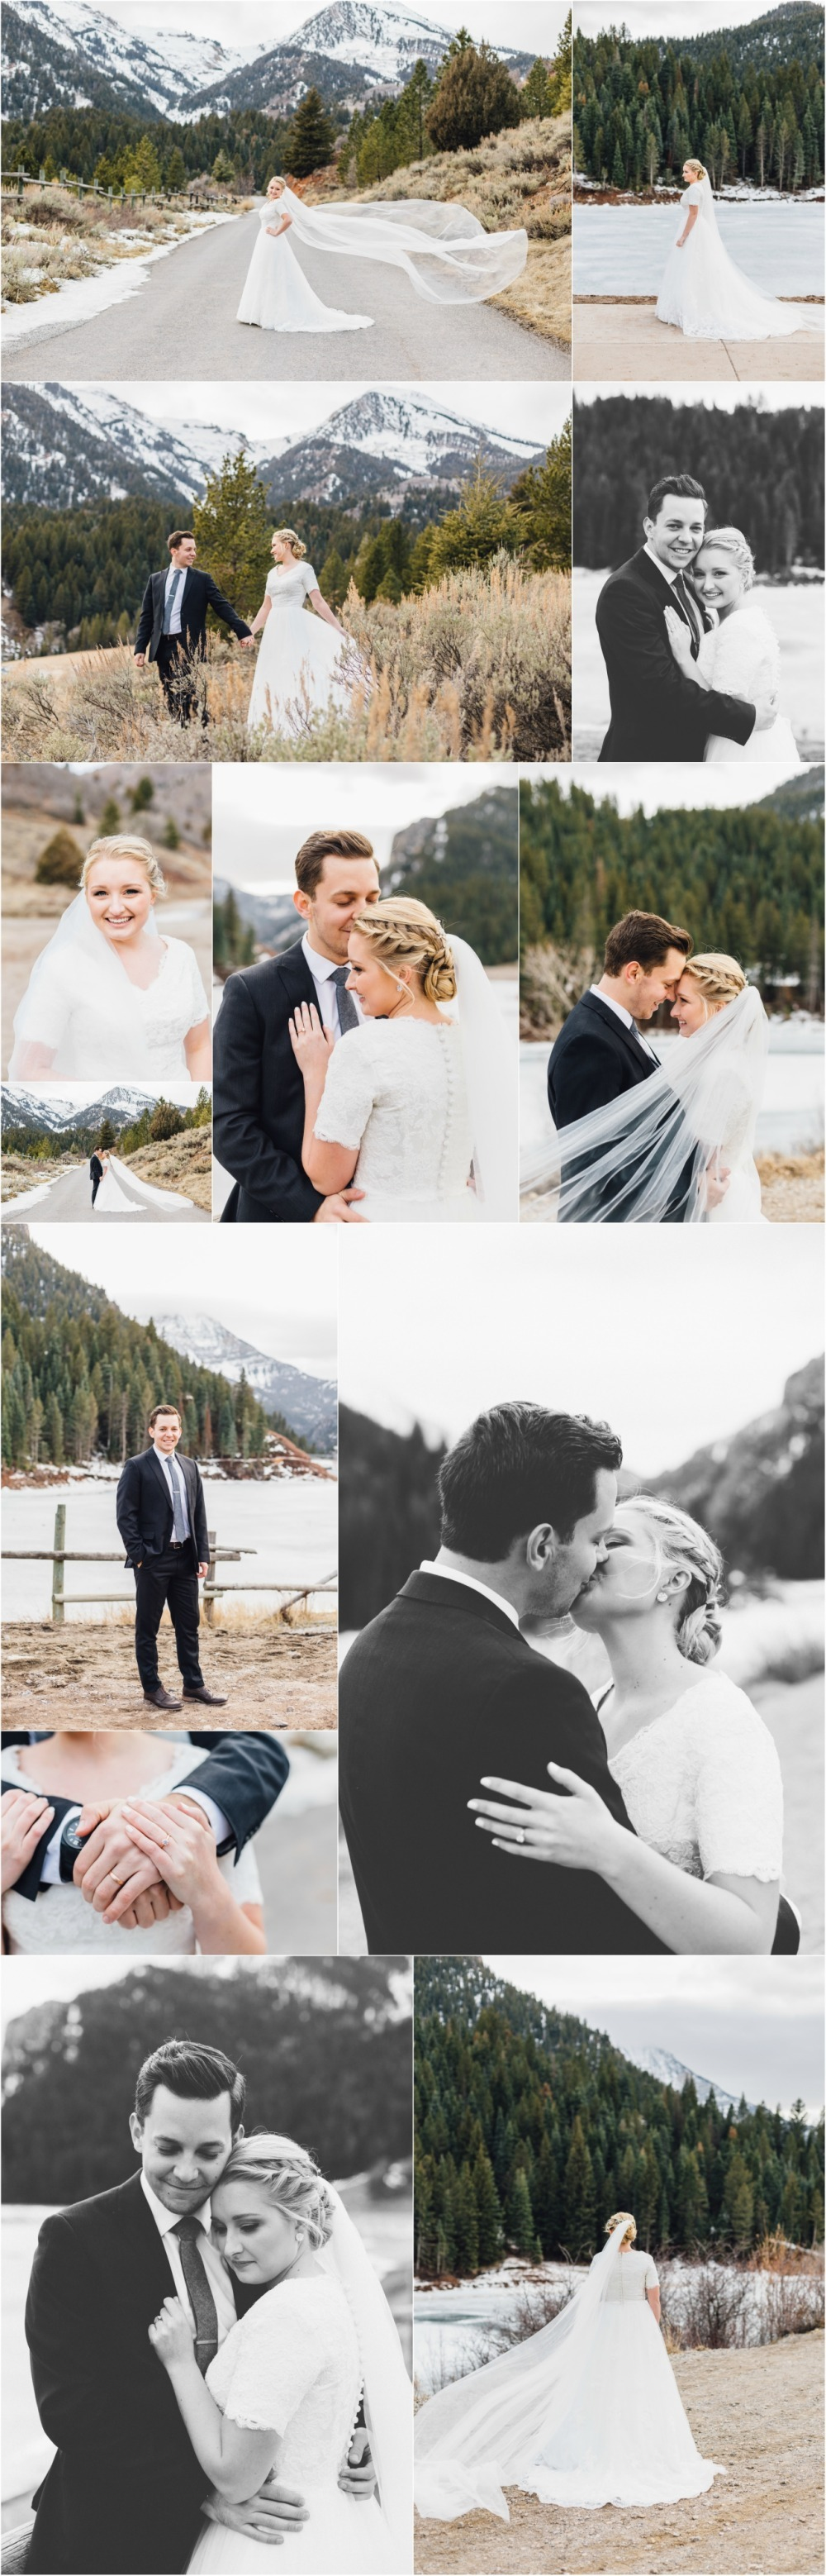 American Fork Tibble Fork Bridal Photographer